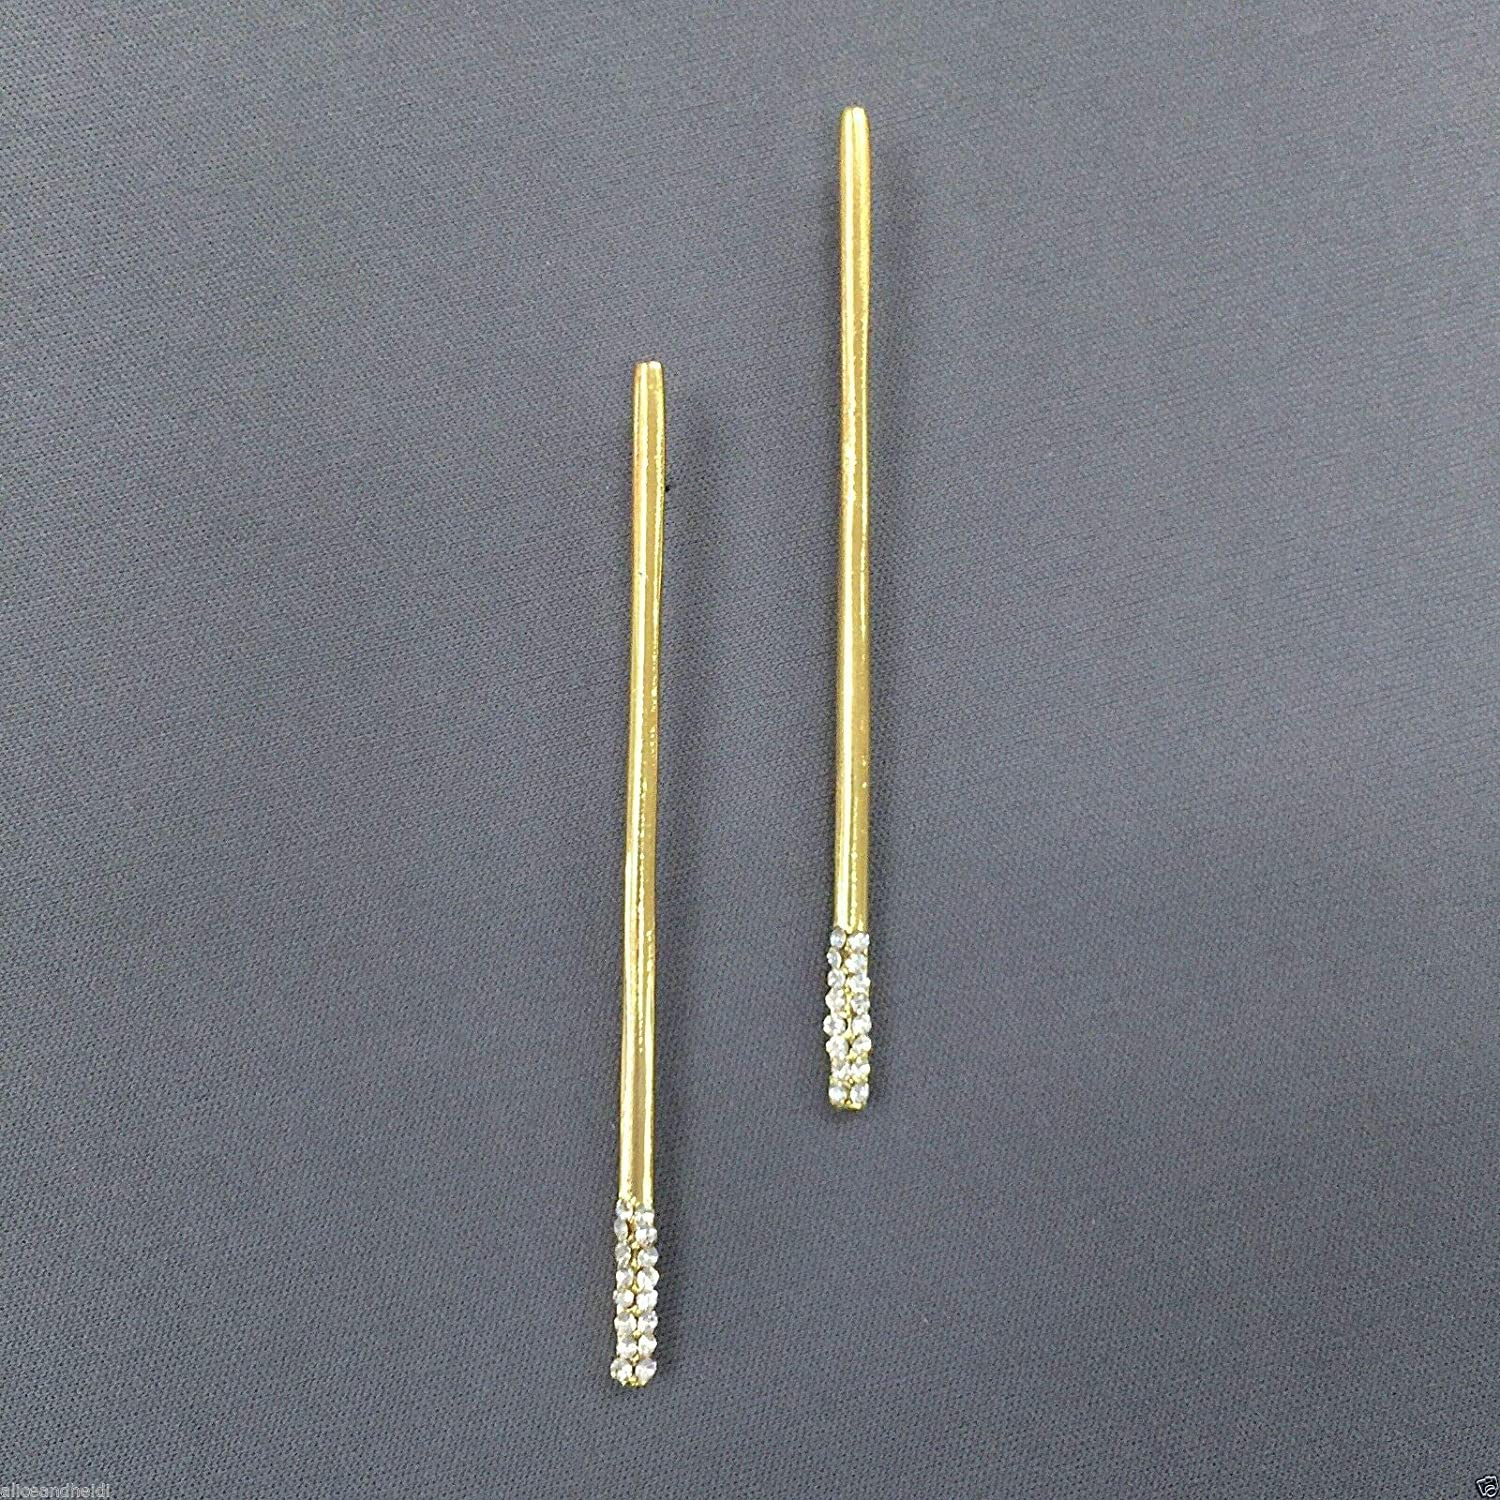 Earrings - Jewelry - for Women - Elegant - Gold Finish Thin Cylinder Shaped with Rhynestone Tip